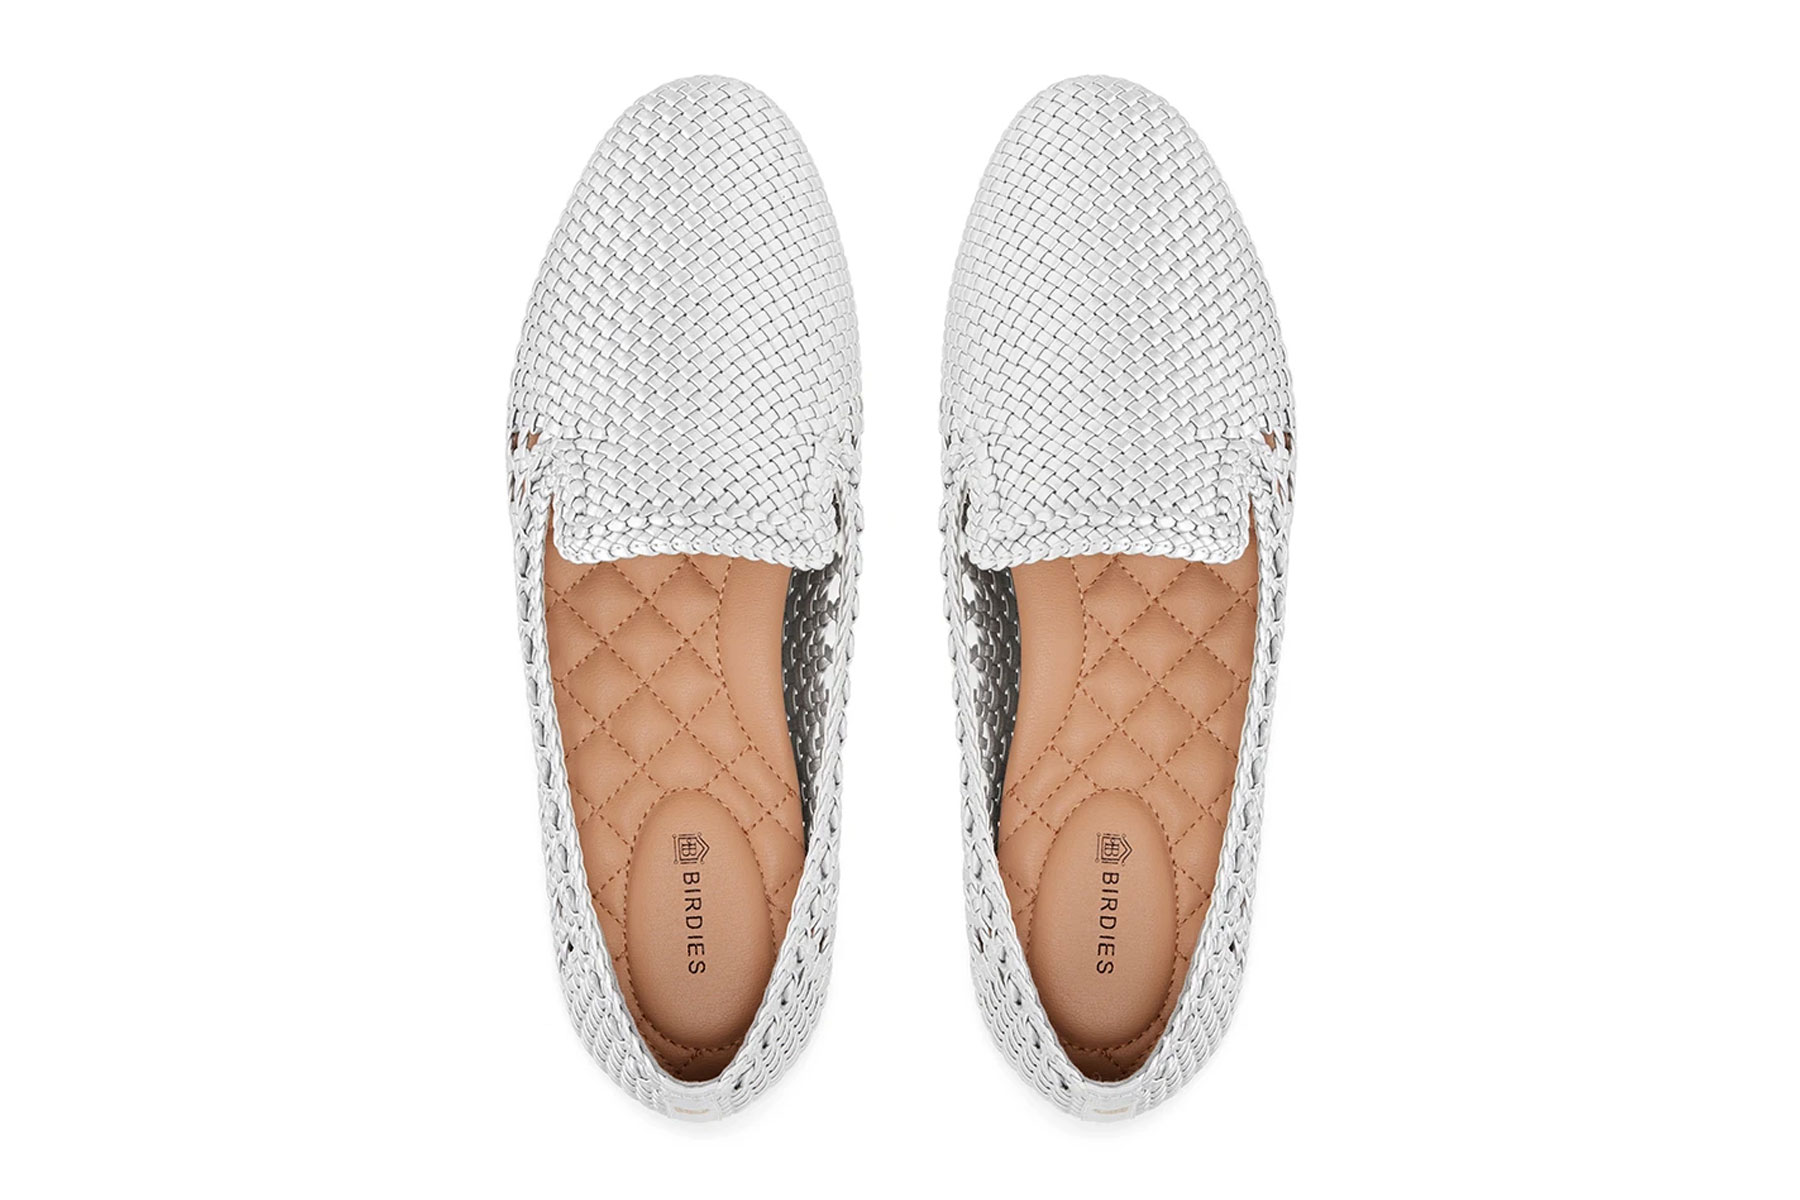 Silver woven flat slip on shoes